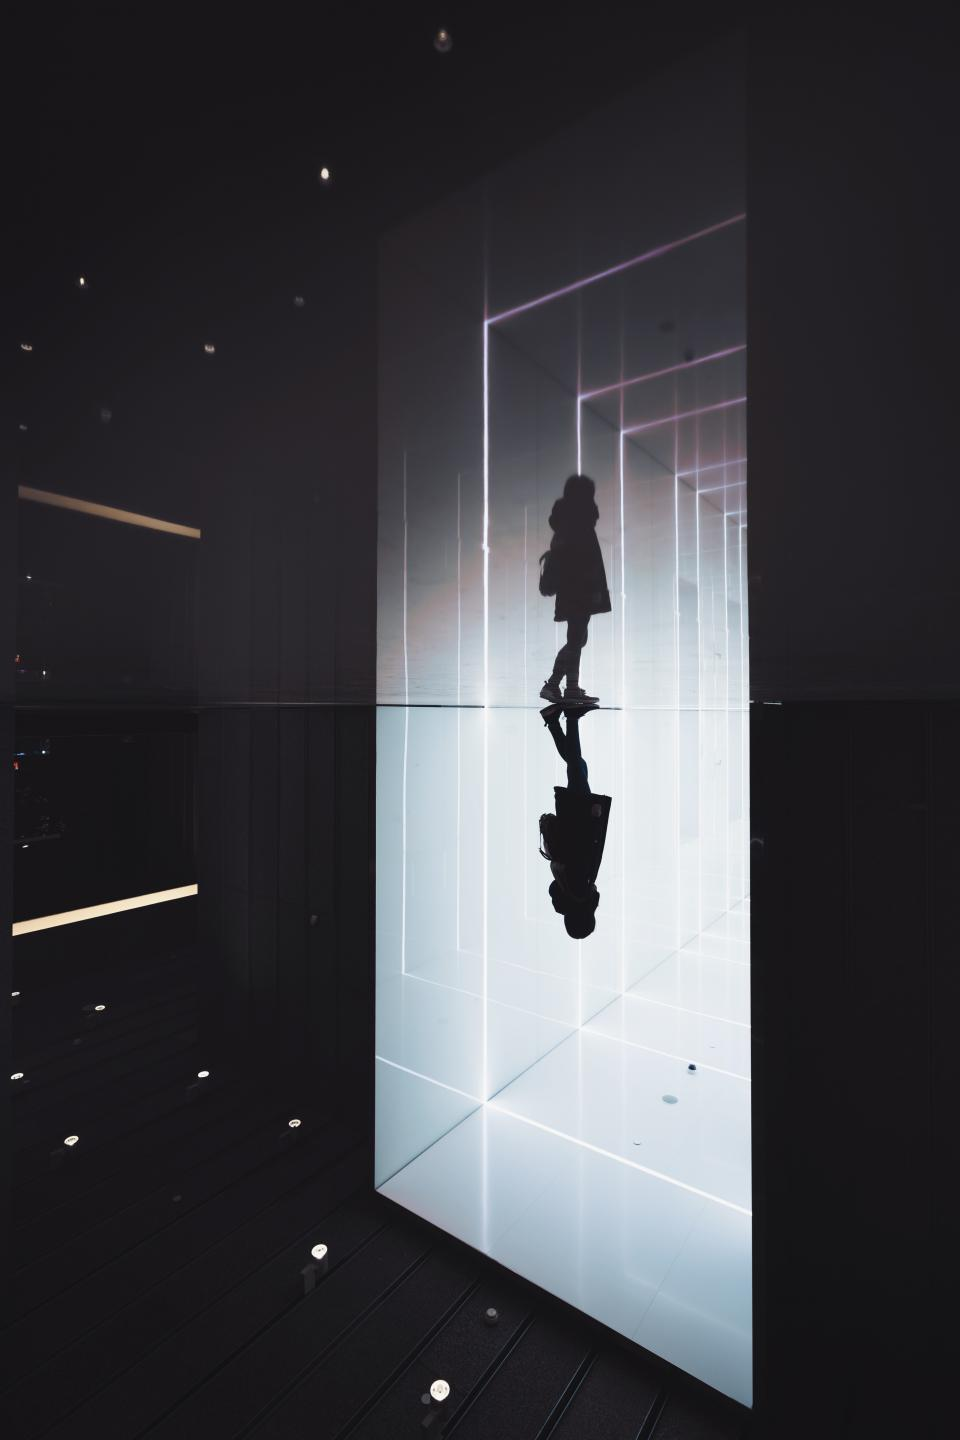 people woman alone walking building indoor dark silhouette floor reflection